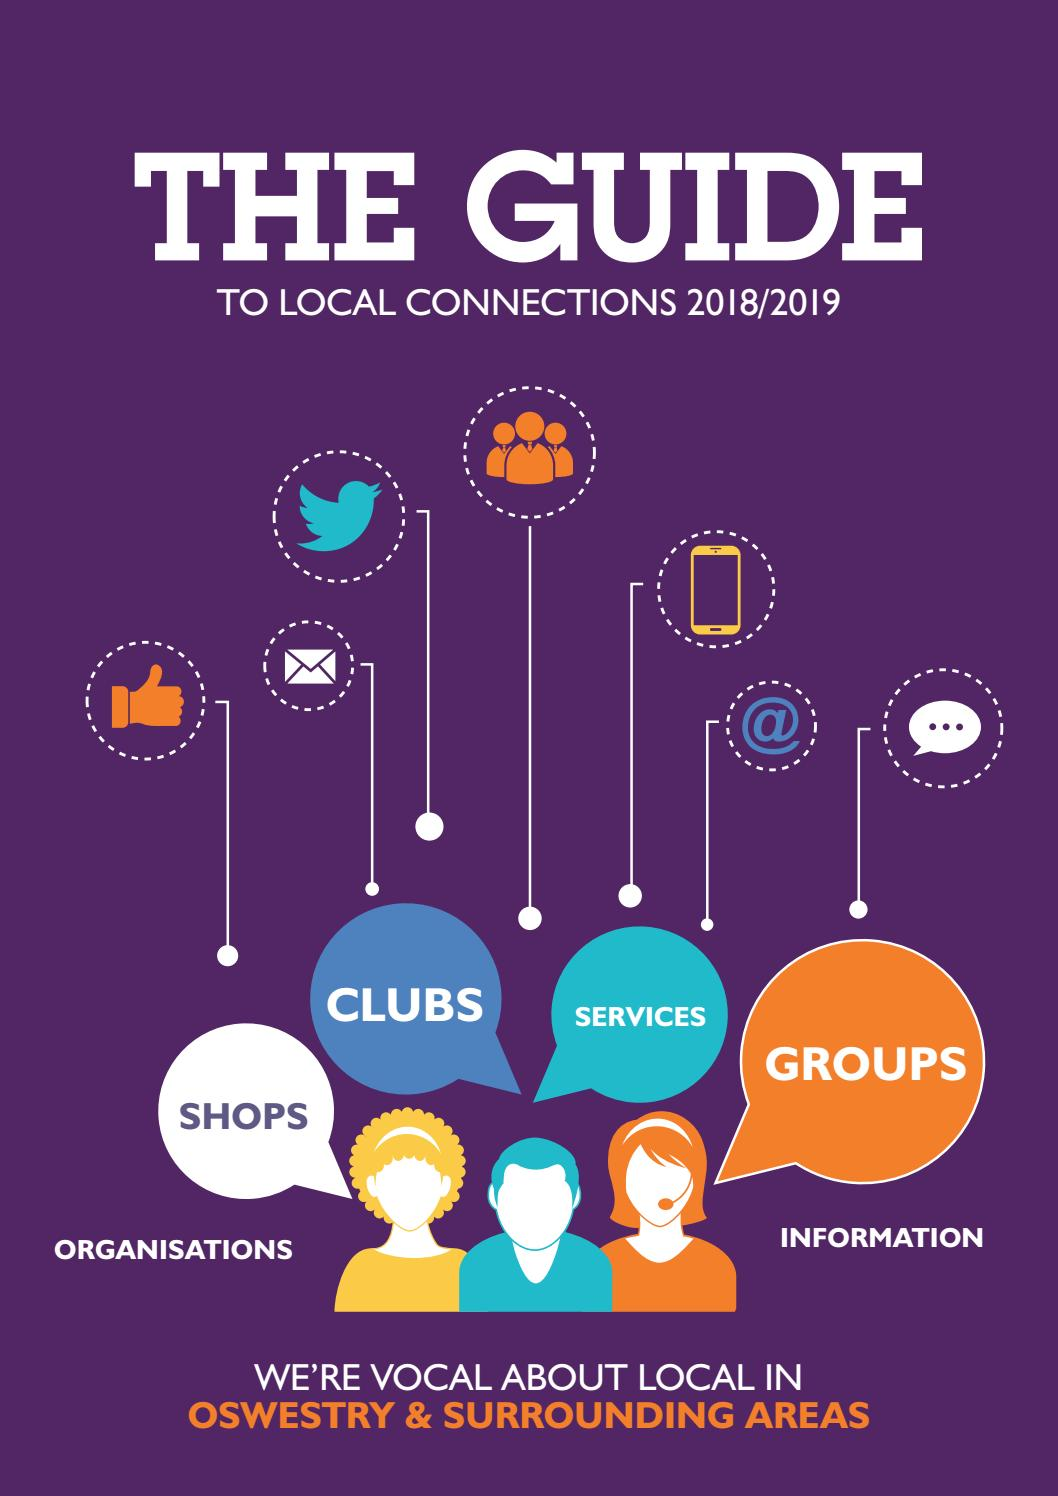 The Guide To Local Connections 2018 19 By Dts Media Ltd Issuu 0800 Handyman Changing A Light Fitting Wiring